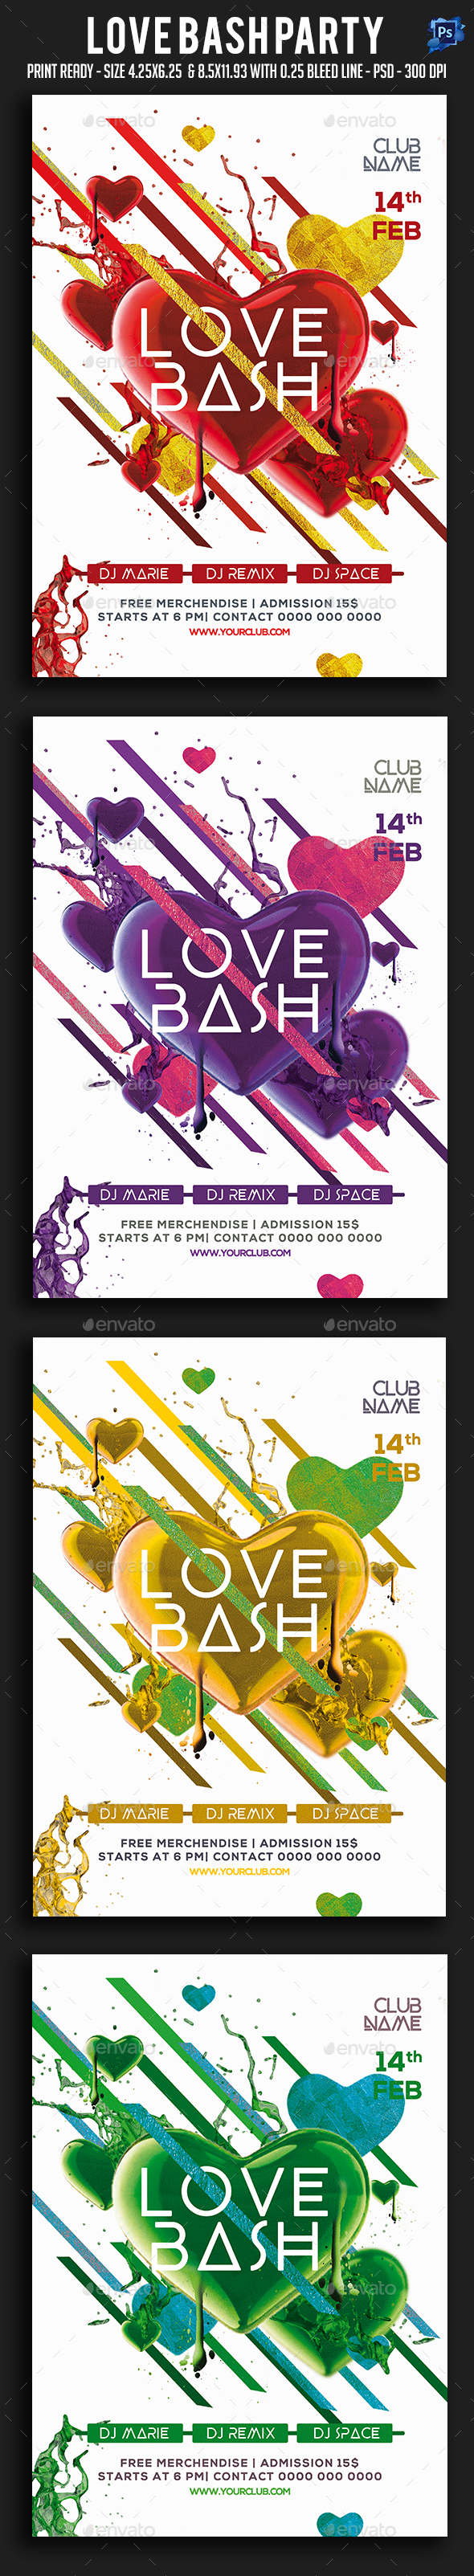 Love Bash Party Flyer - Clubs & Parties Events